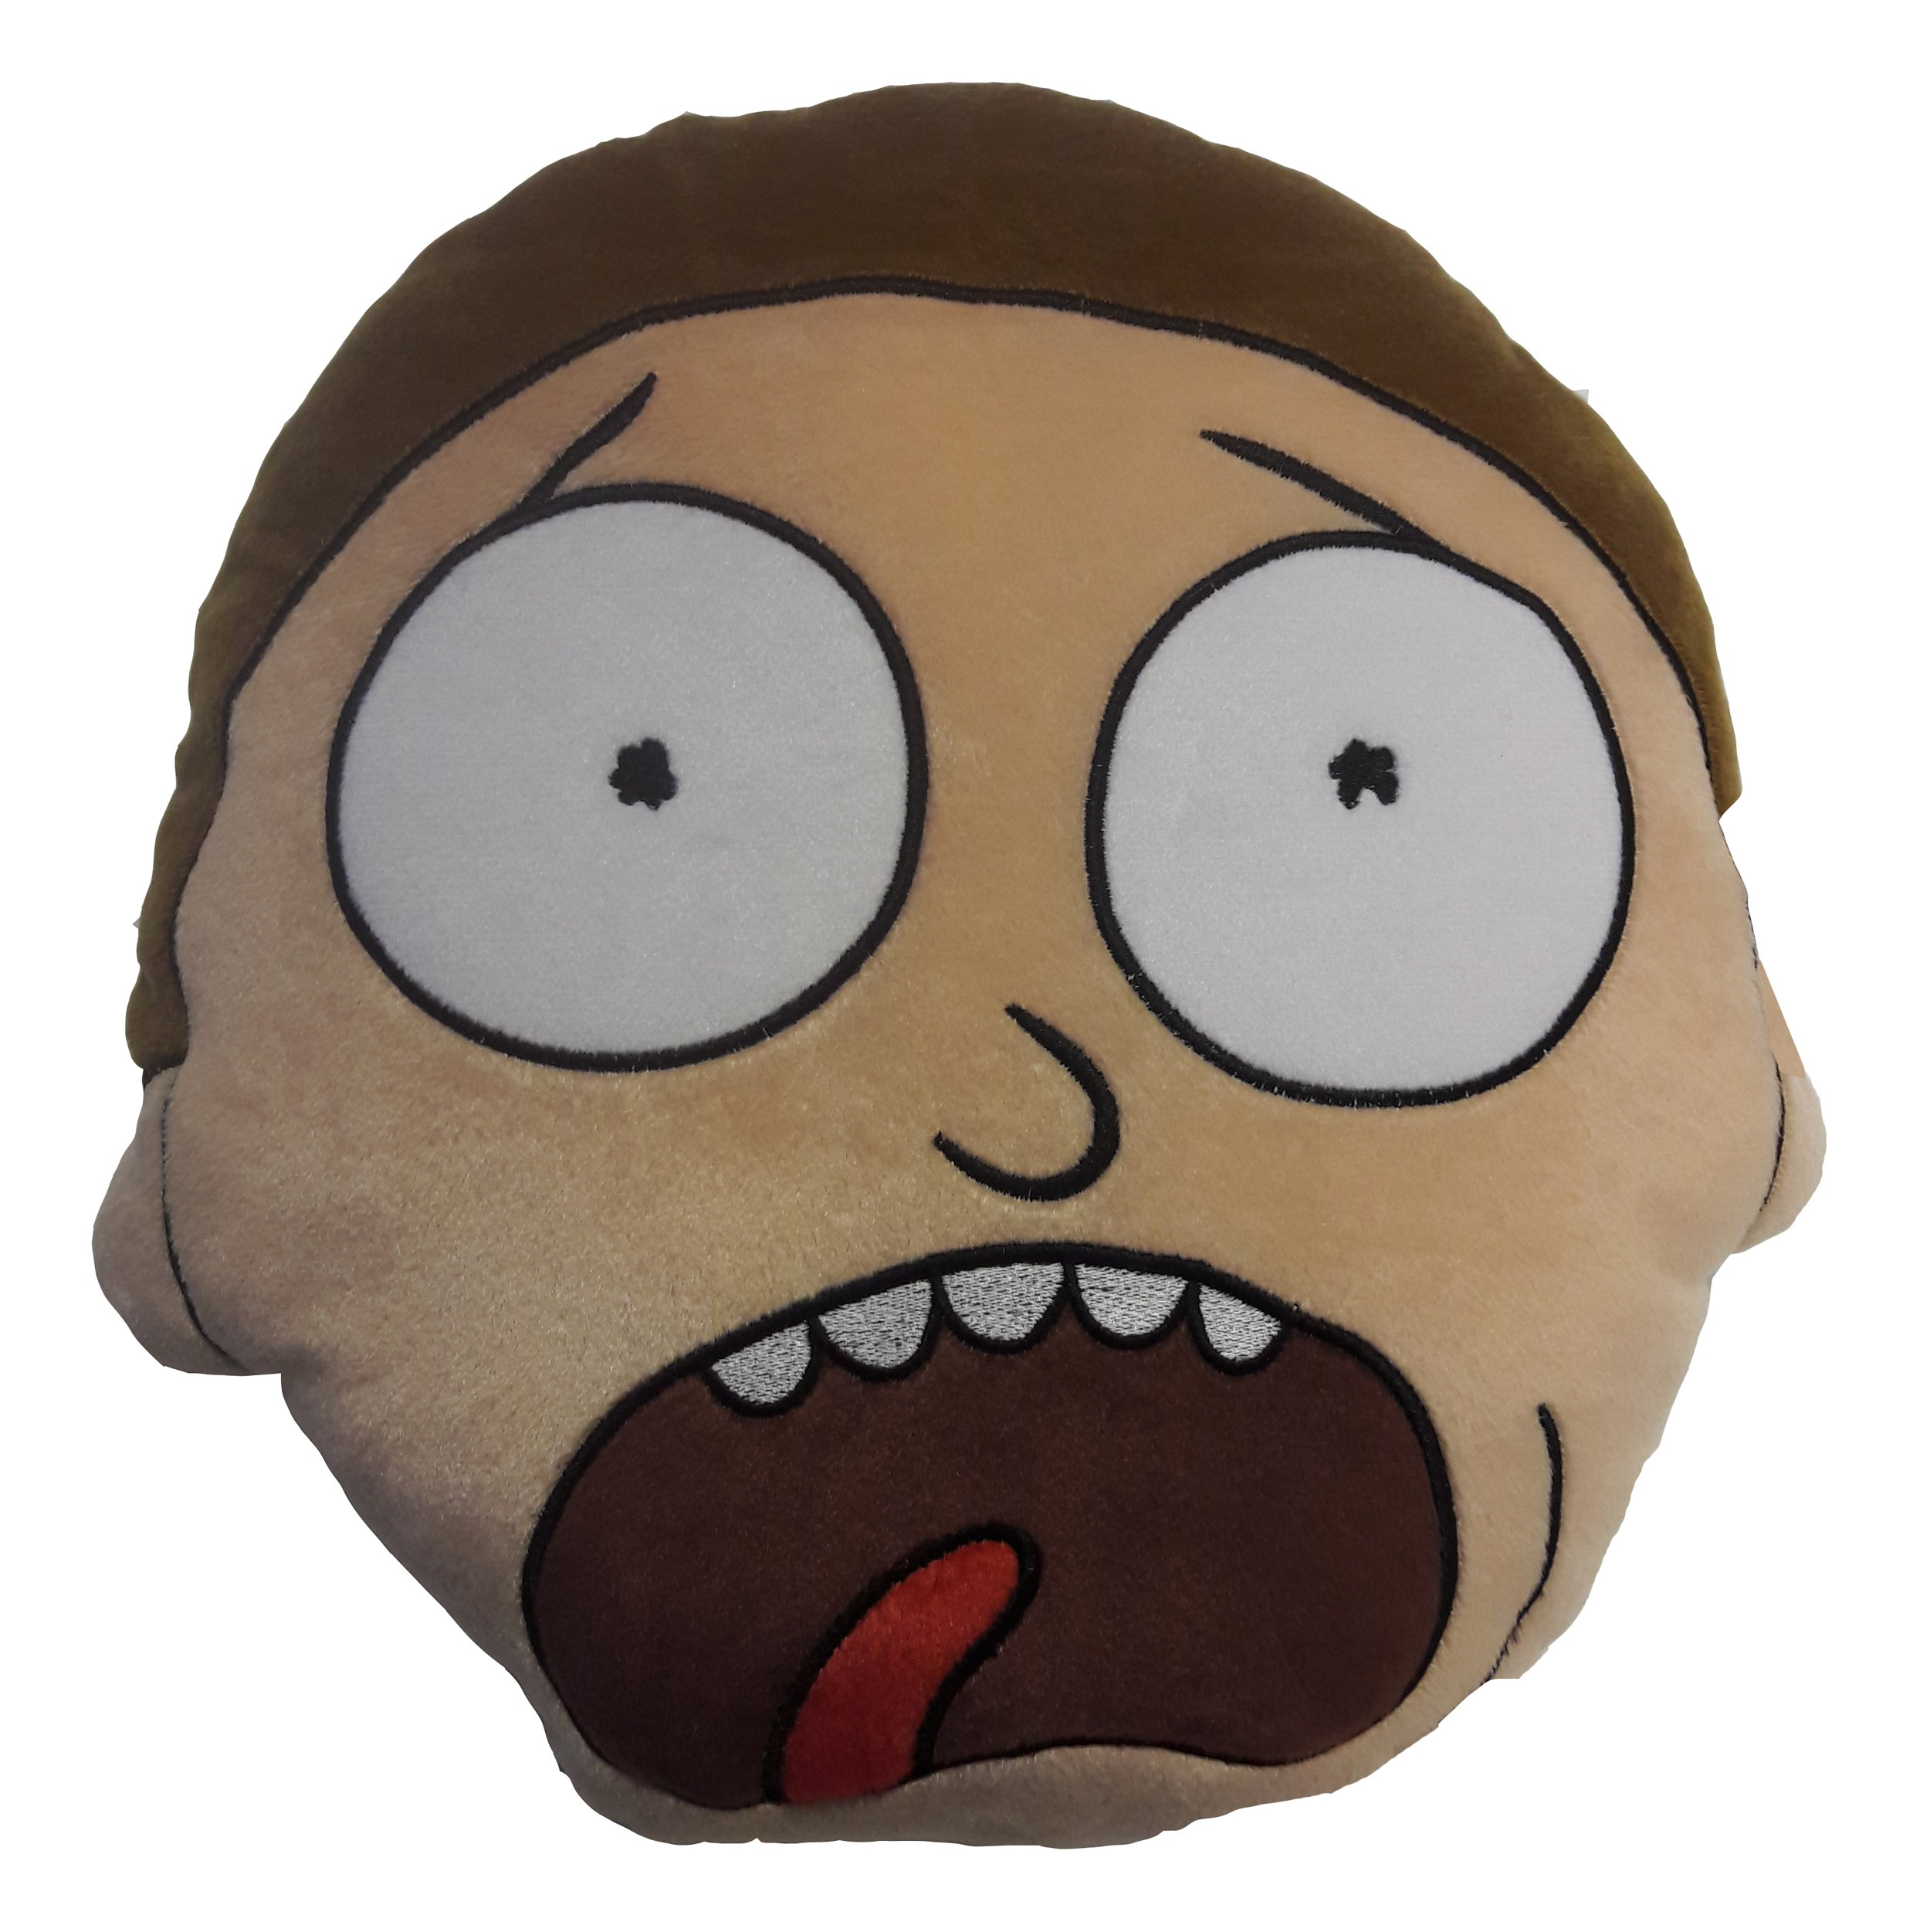 RICK AND MORTY Embroidered Shaped Cushion - Morty by RICK AND MORTY